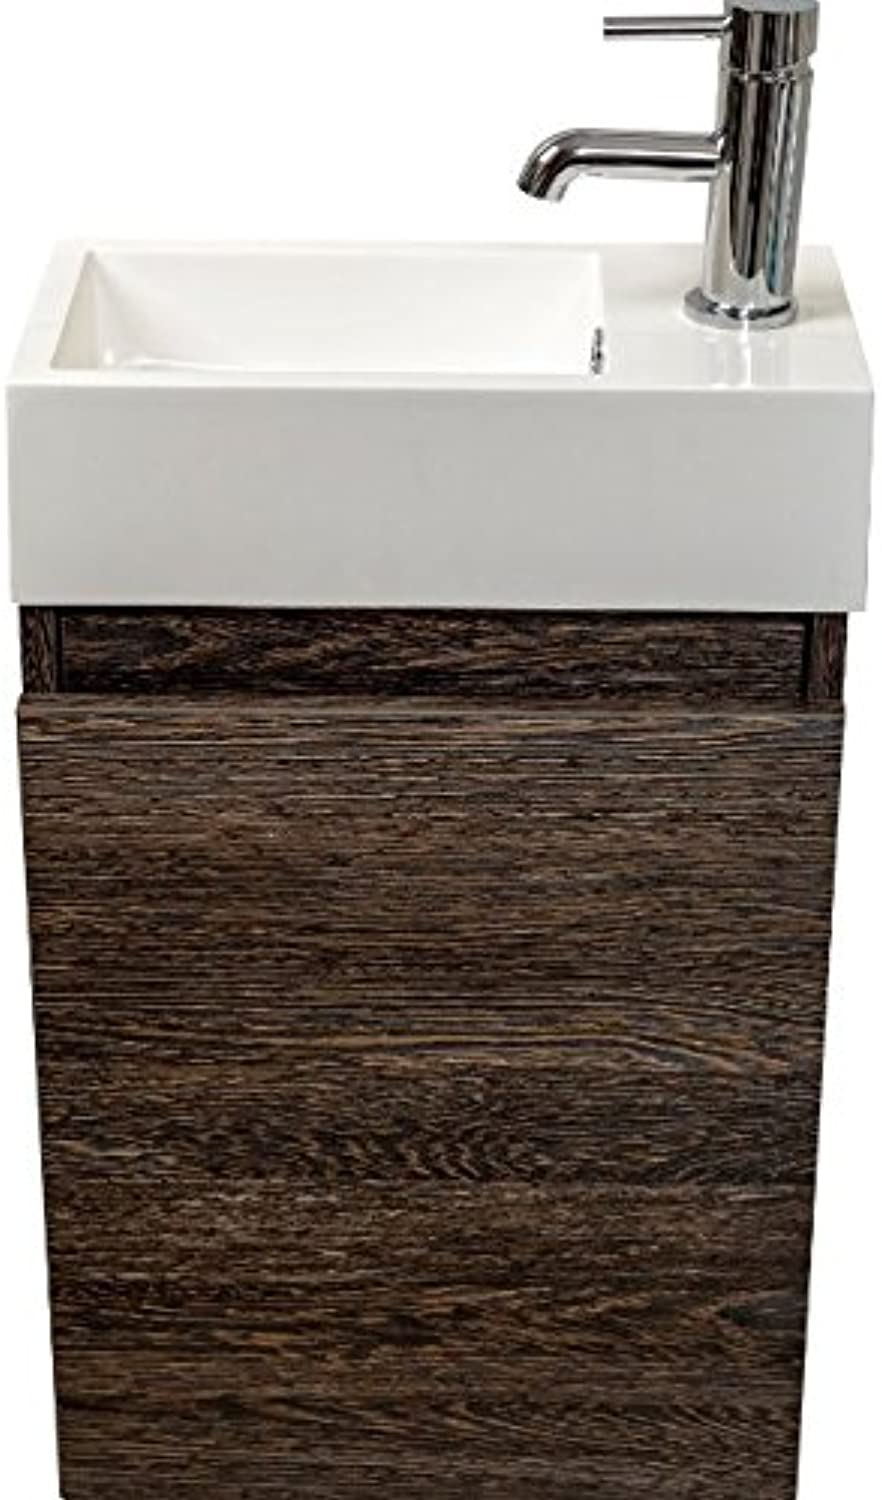 Luxurious Bathroom Vanity Unit - Available In 2 Elegant Finishes - Includes Composite Resin Basin - Soft Close Drawer (Dark Oak)